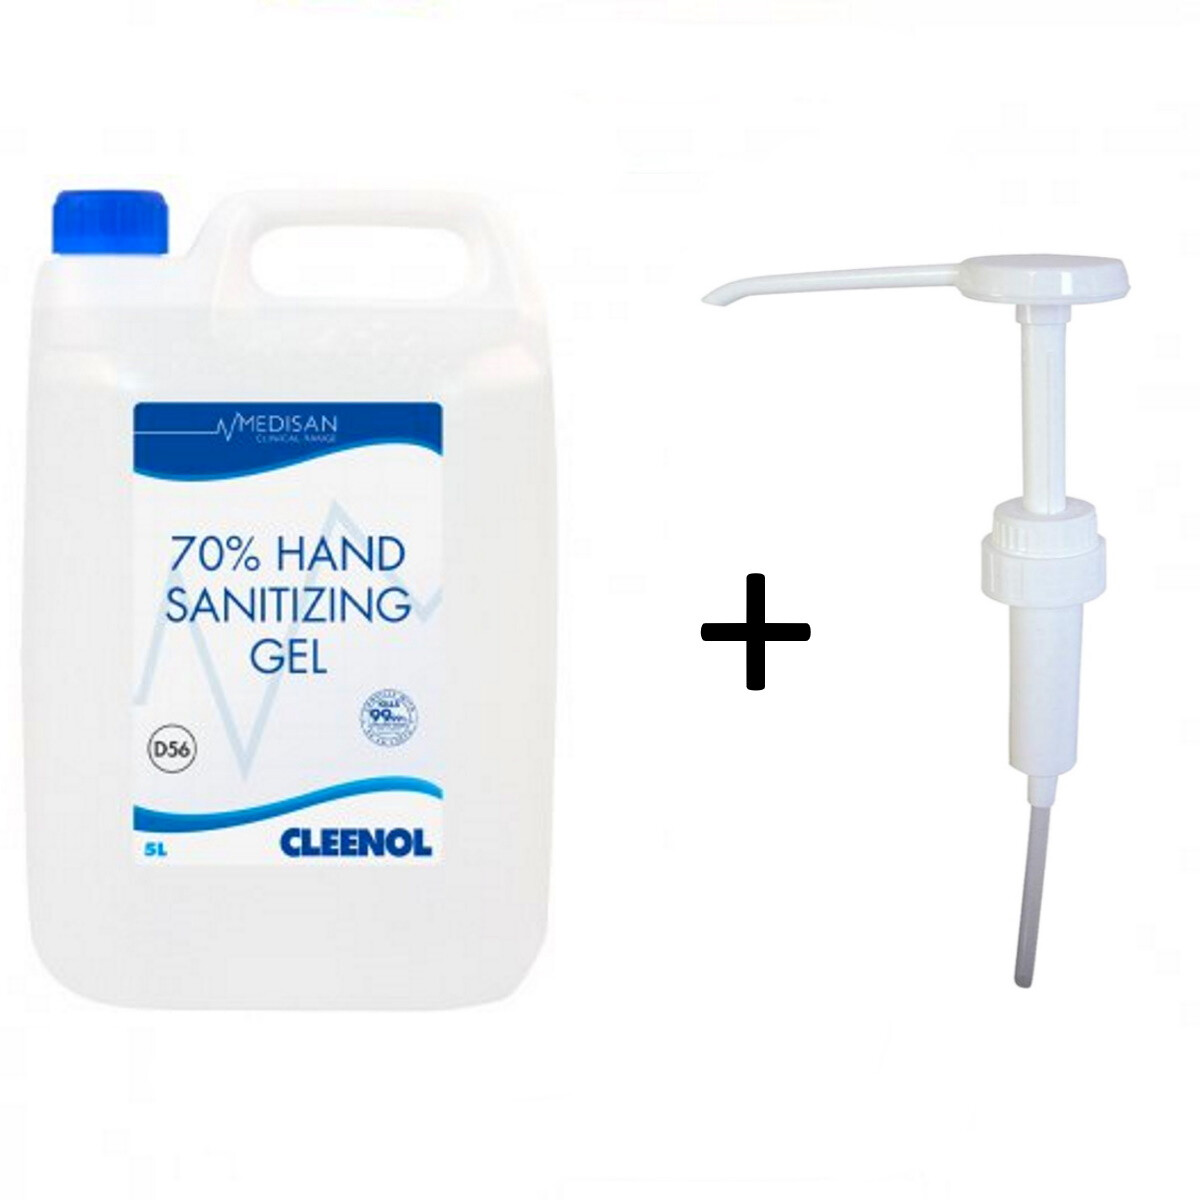 Medisan 077123  70% Hand Sanitizing Gel - 5ltr Container with 974390 Hand Pump